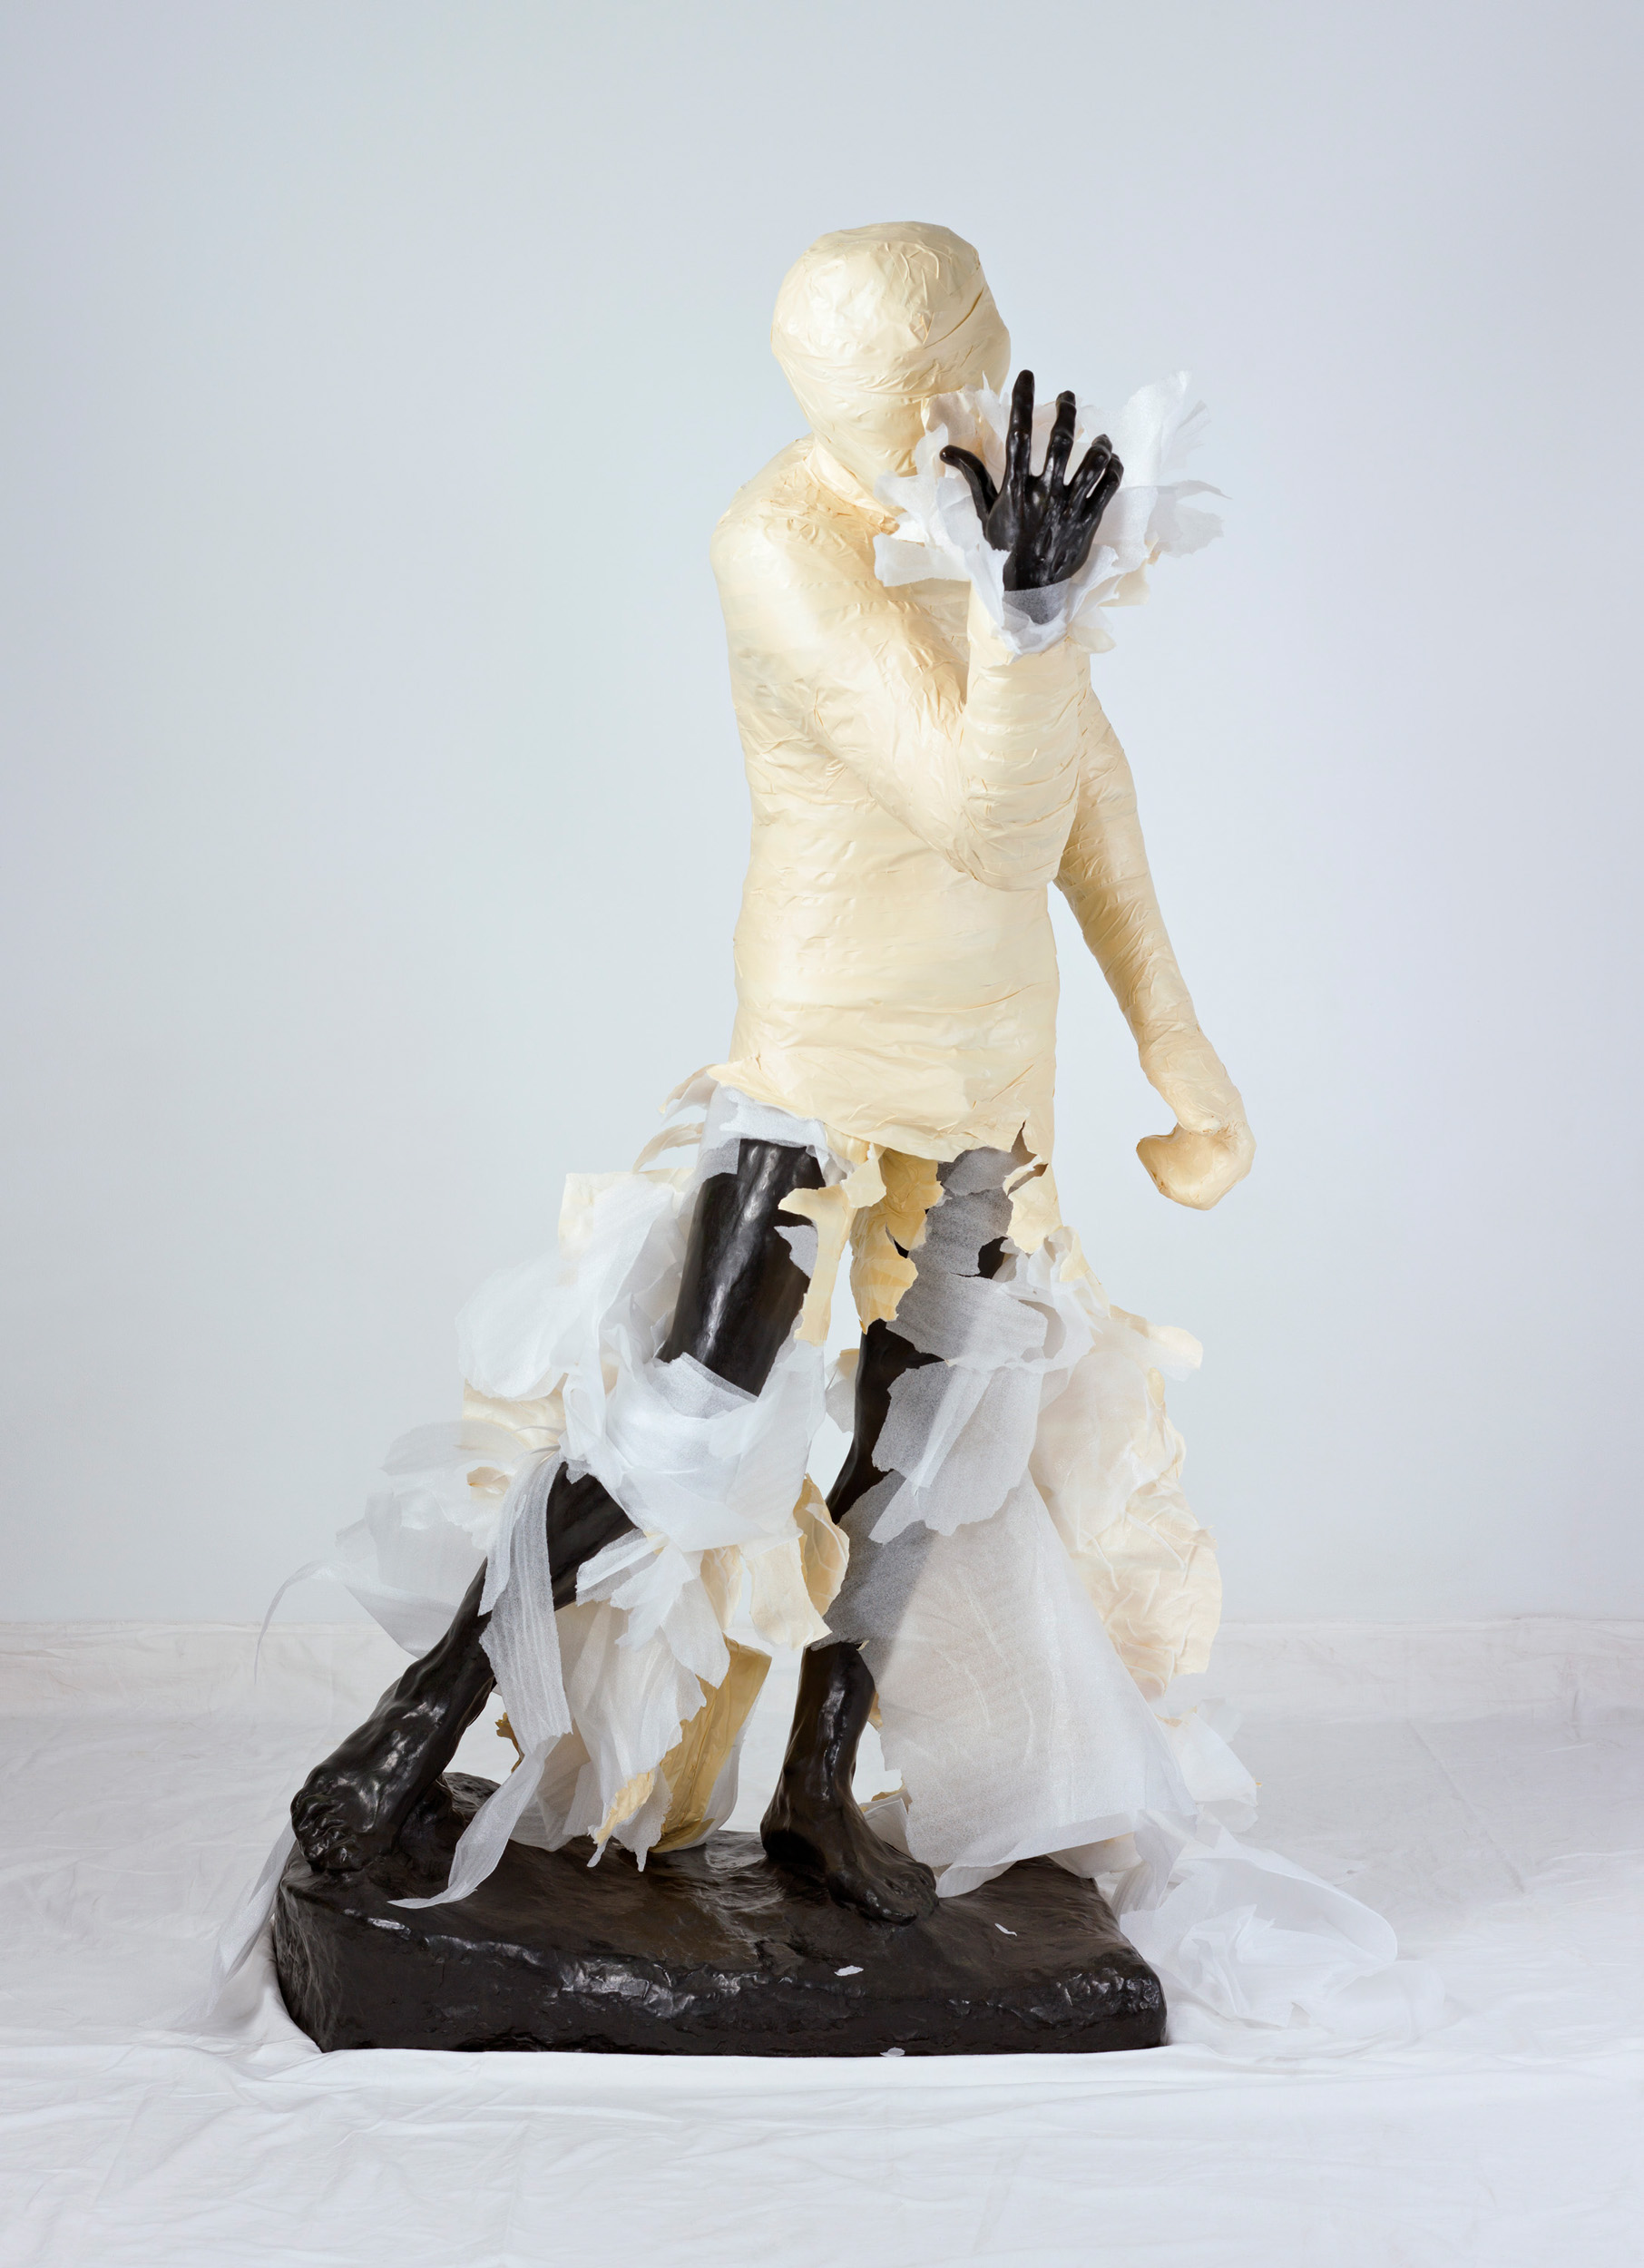 Unwrapping Rodin (White) 4   2010, colour photograph 175 x 127 cm / 69 x 50 in. Edition of 2